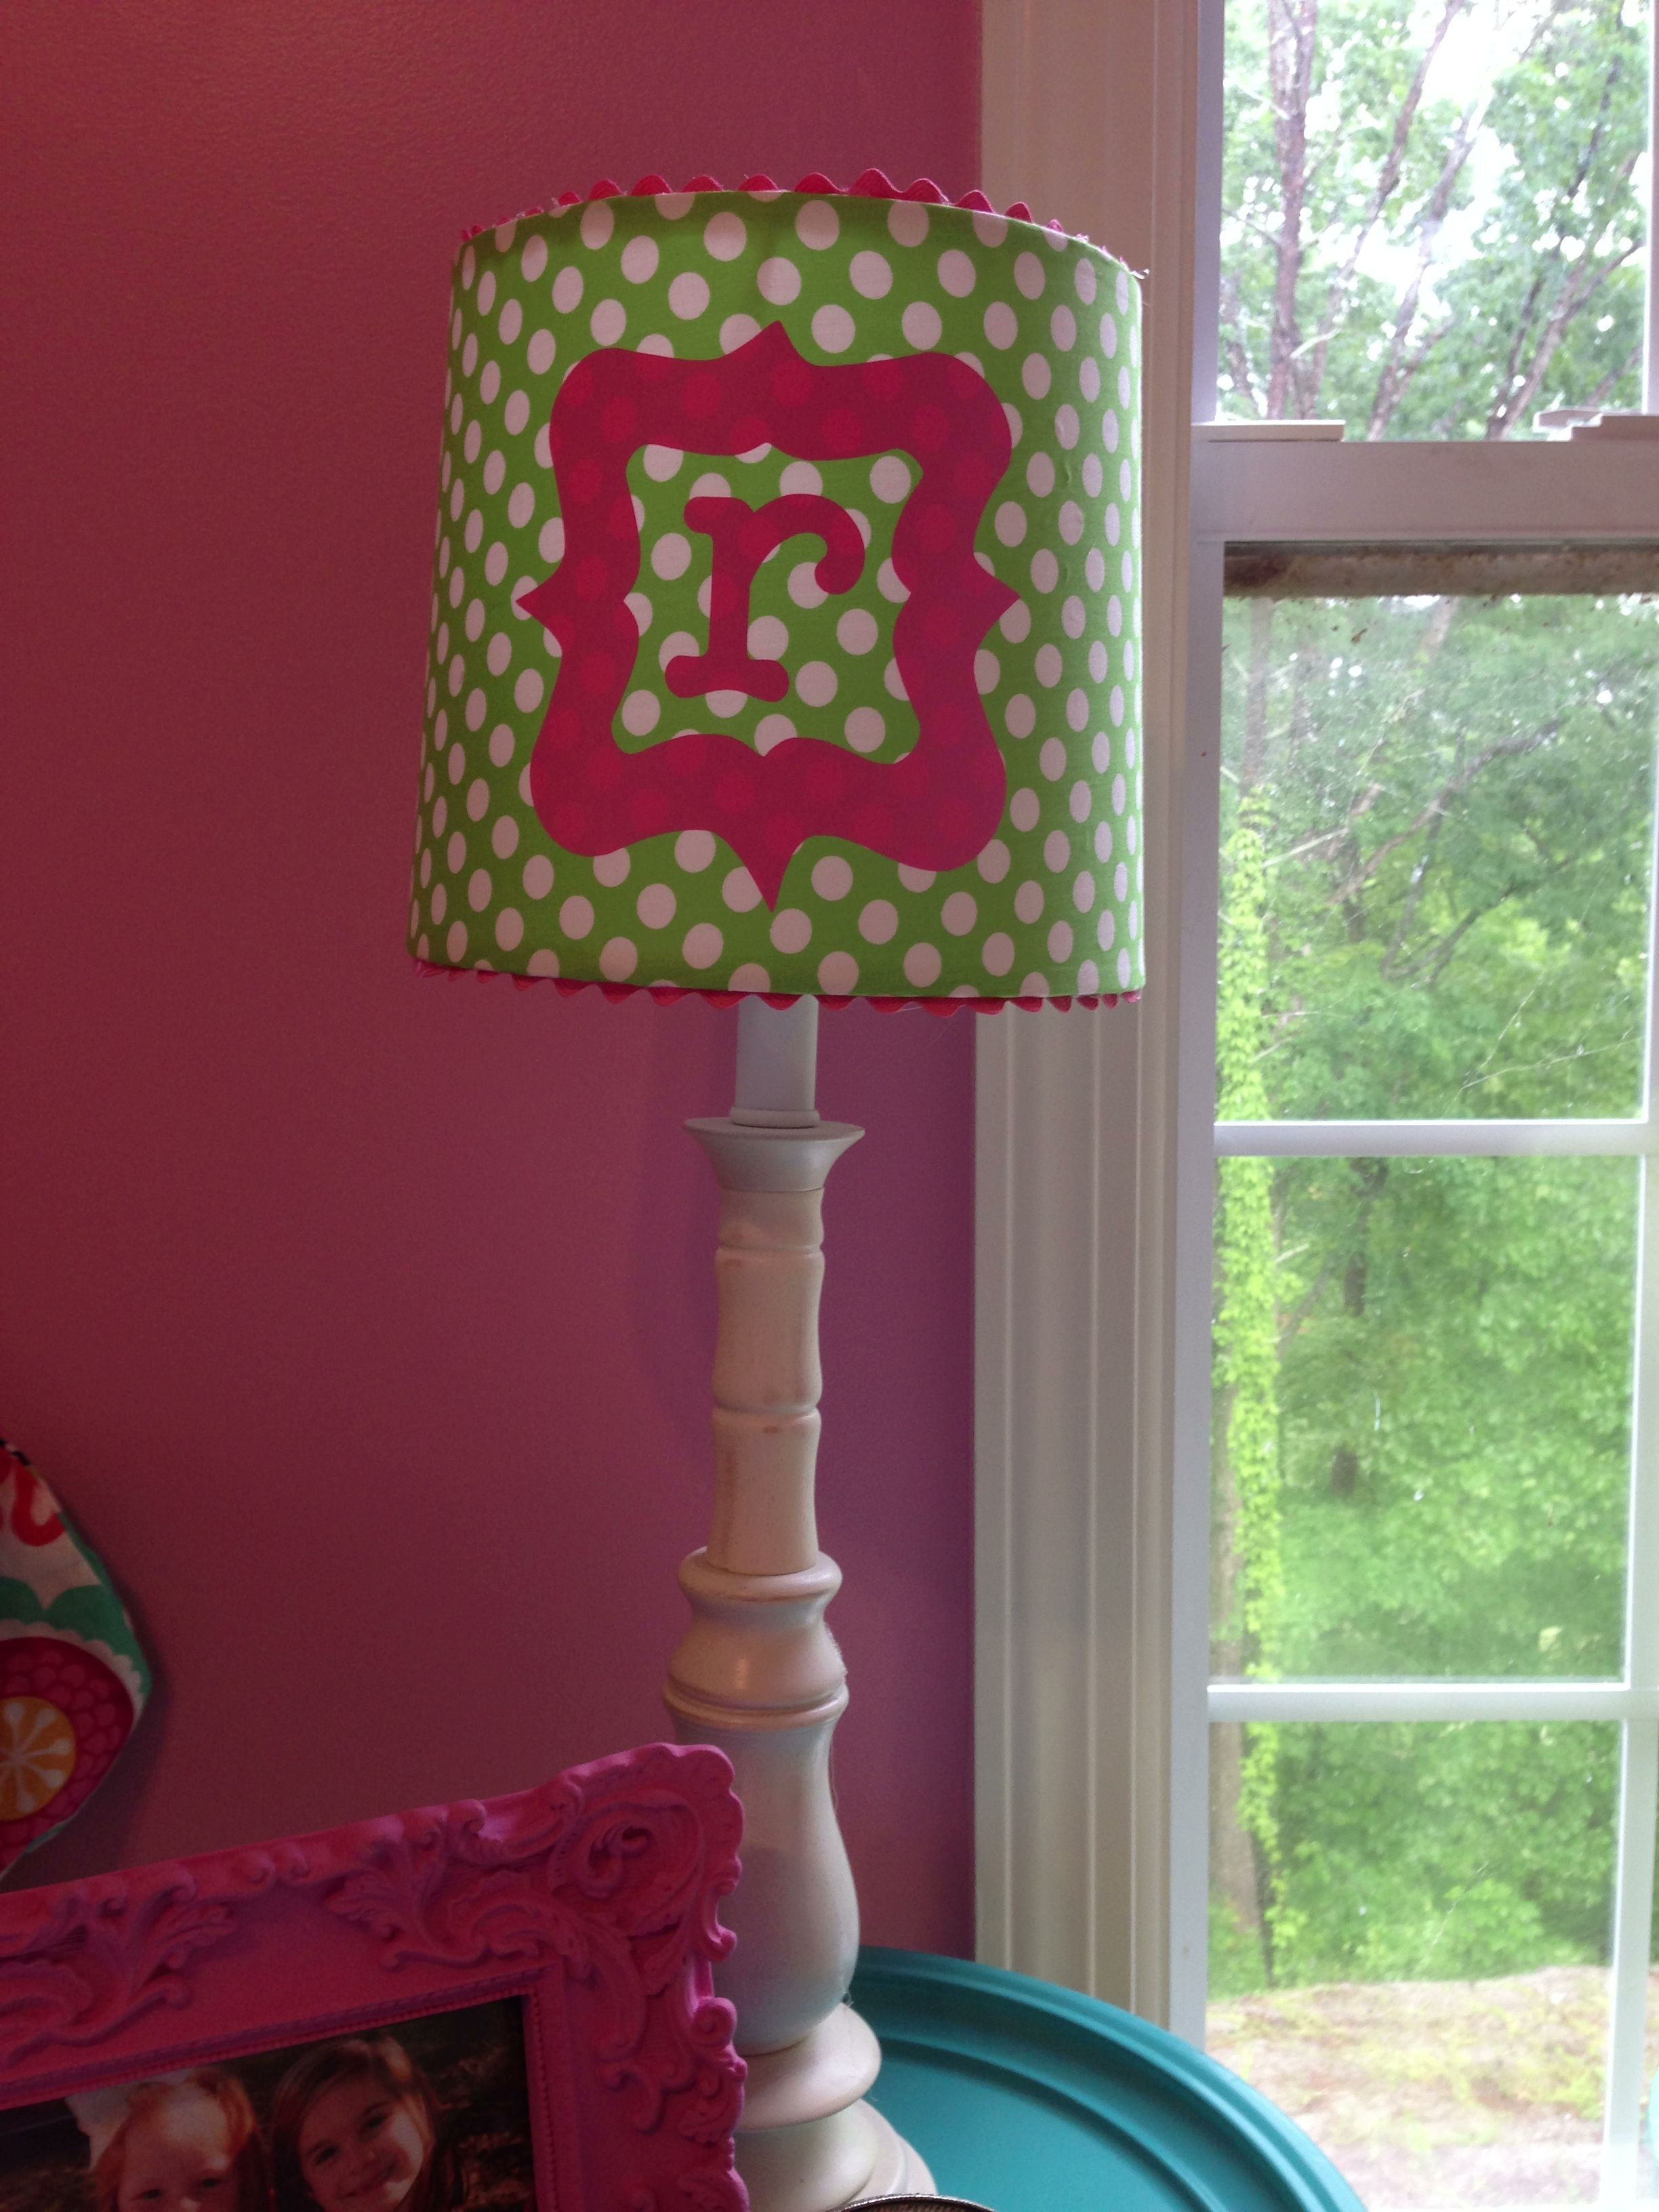 Hobby Lobby Lamp Shades Amazing Self Adhesive Lamp Shade From Hobby Lobby With A Vinyl Design From Decorating Inspiration